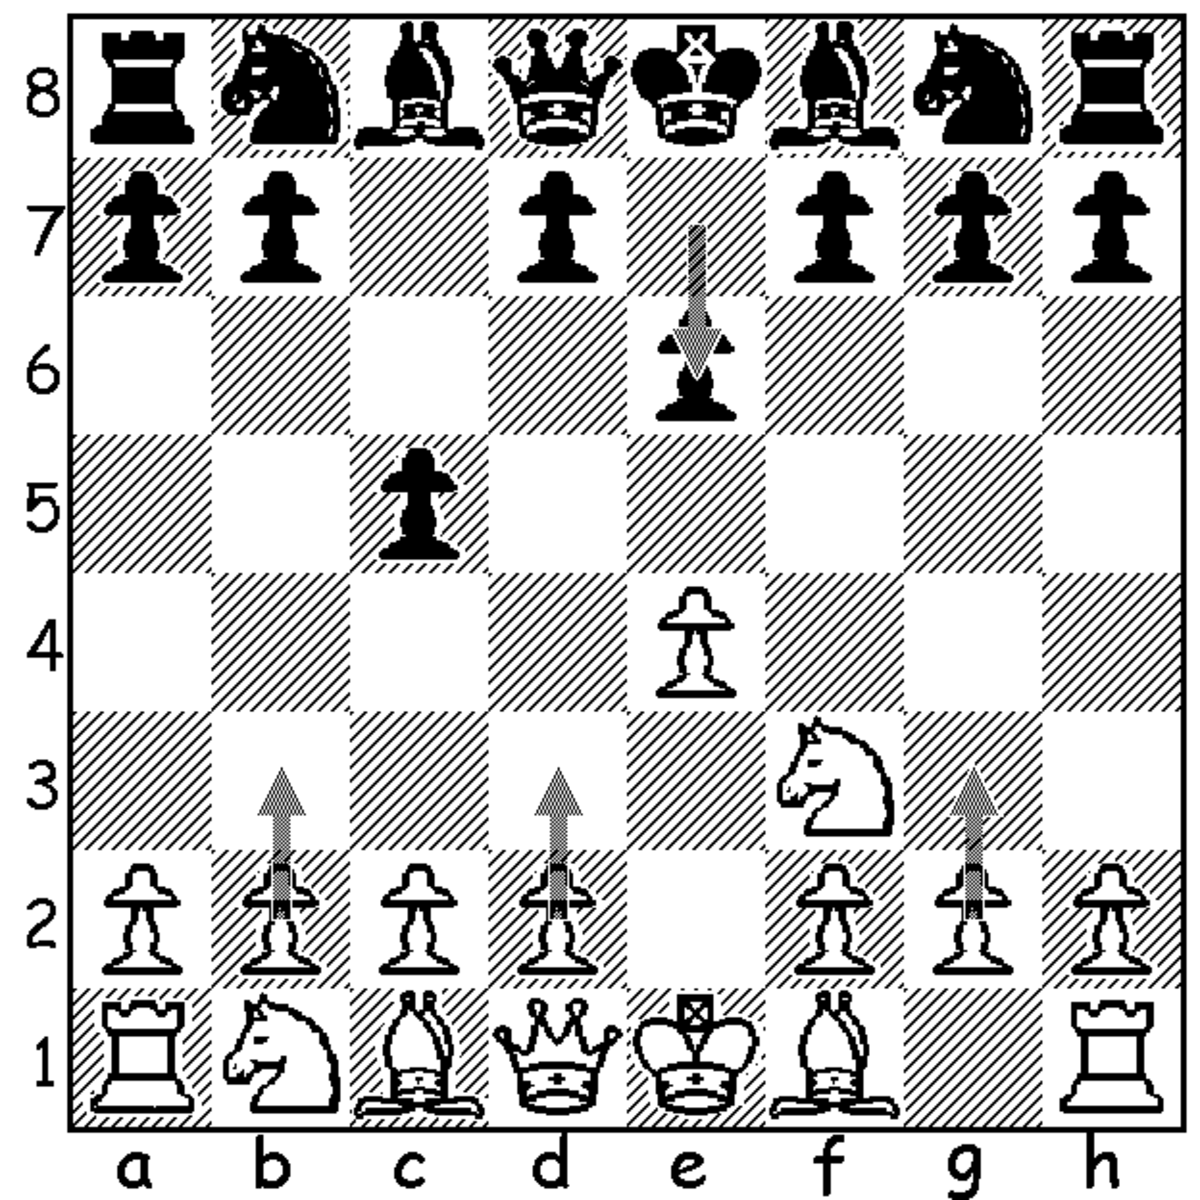 Chess Openings: The Interesting Alternatives 3.b3, 3.d3, and 3.g3 for White Against 2...e6 in the Sicilian Defense